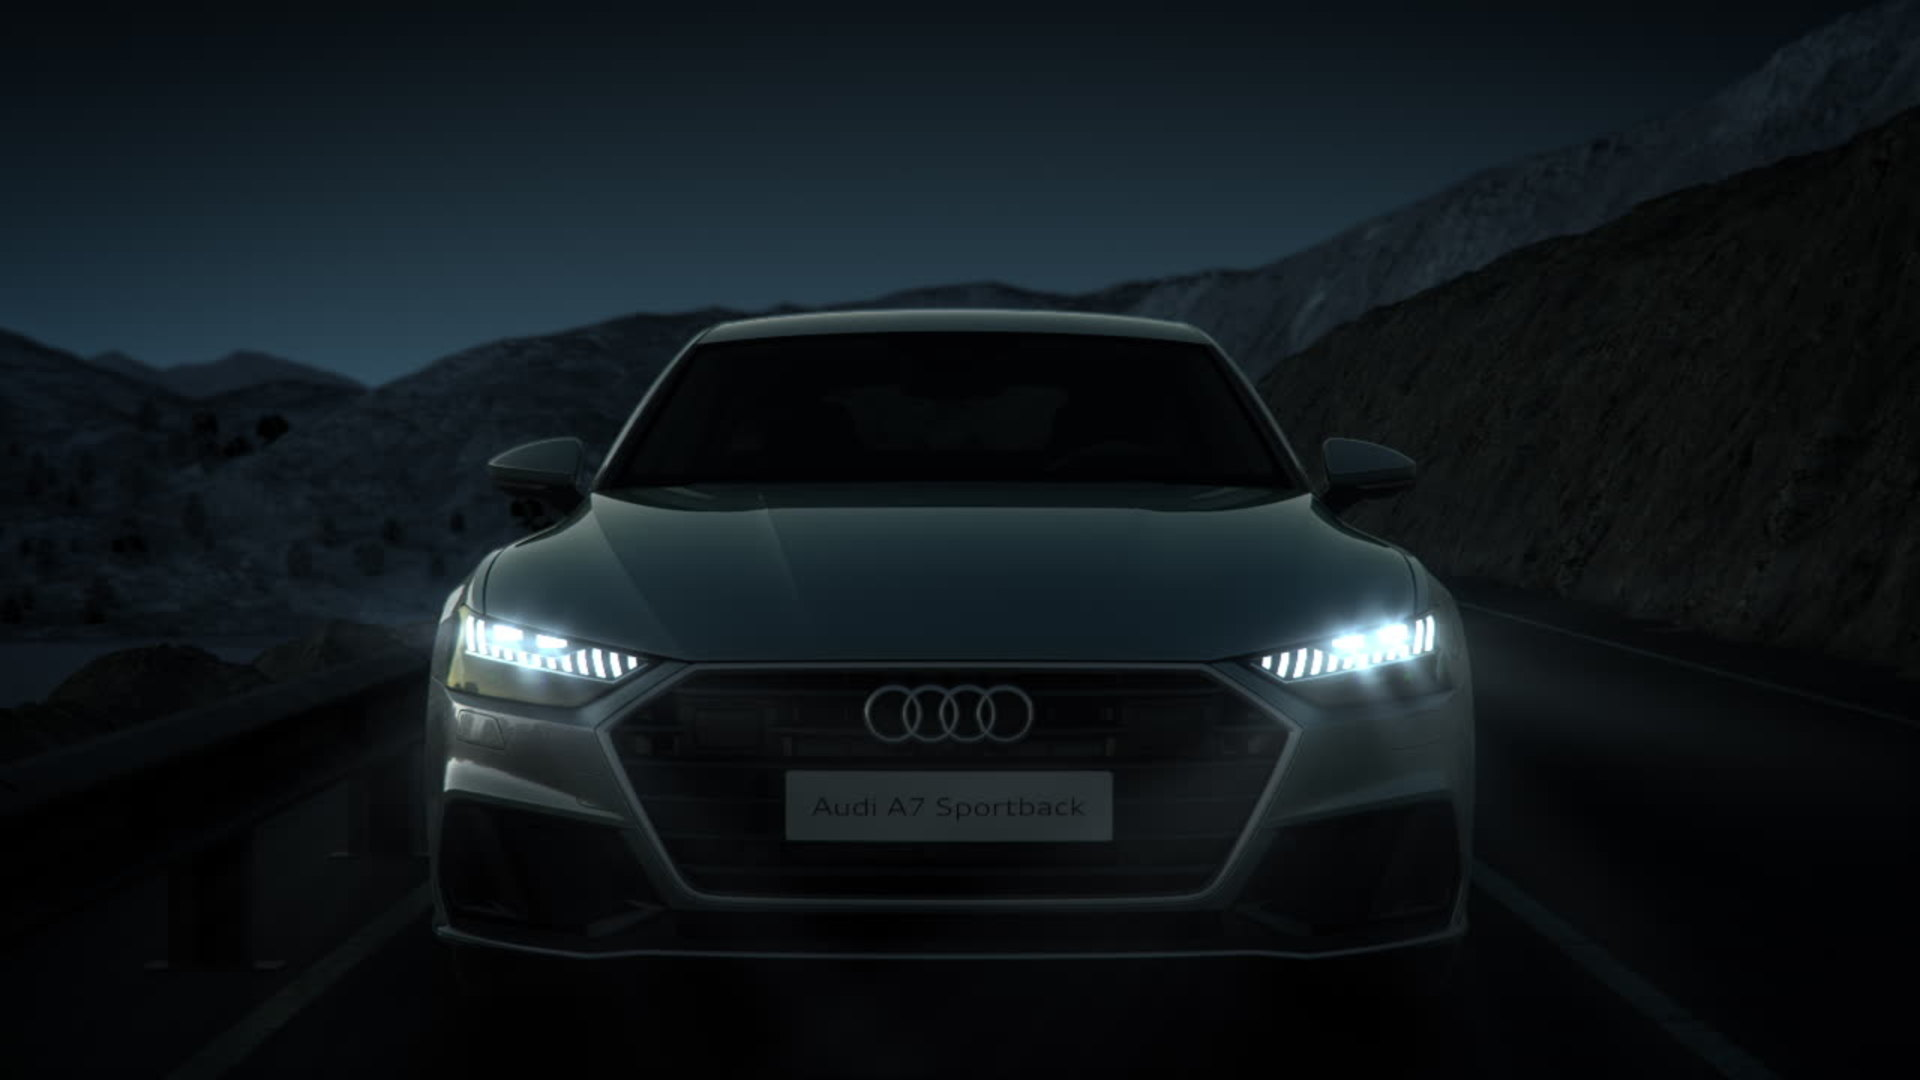 Audi A7 Animation Lichtfunktionen